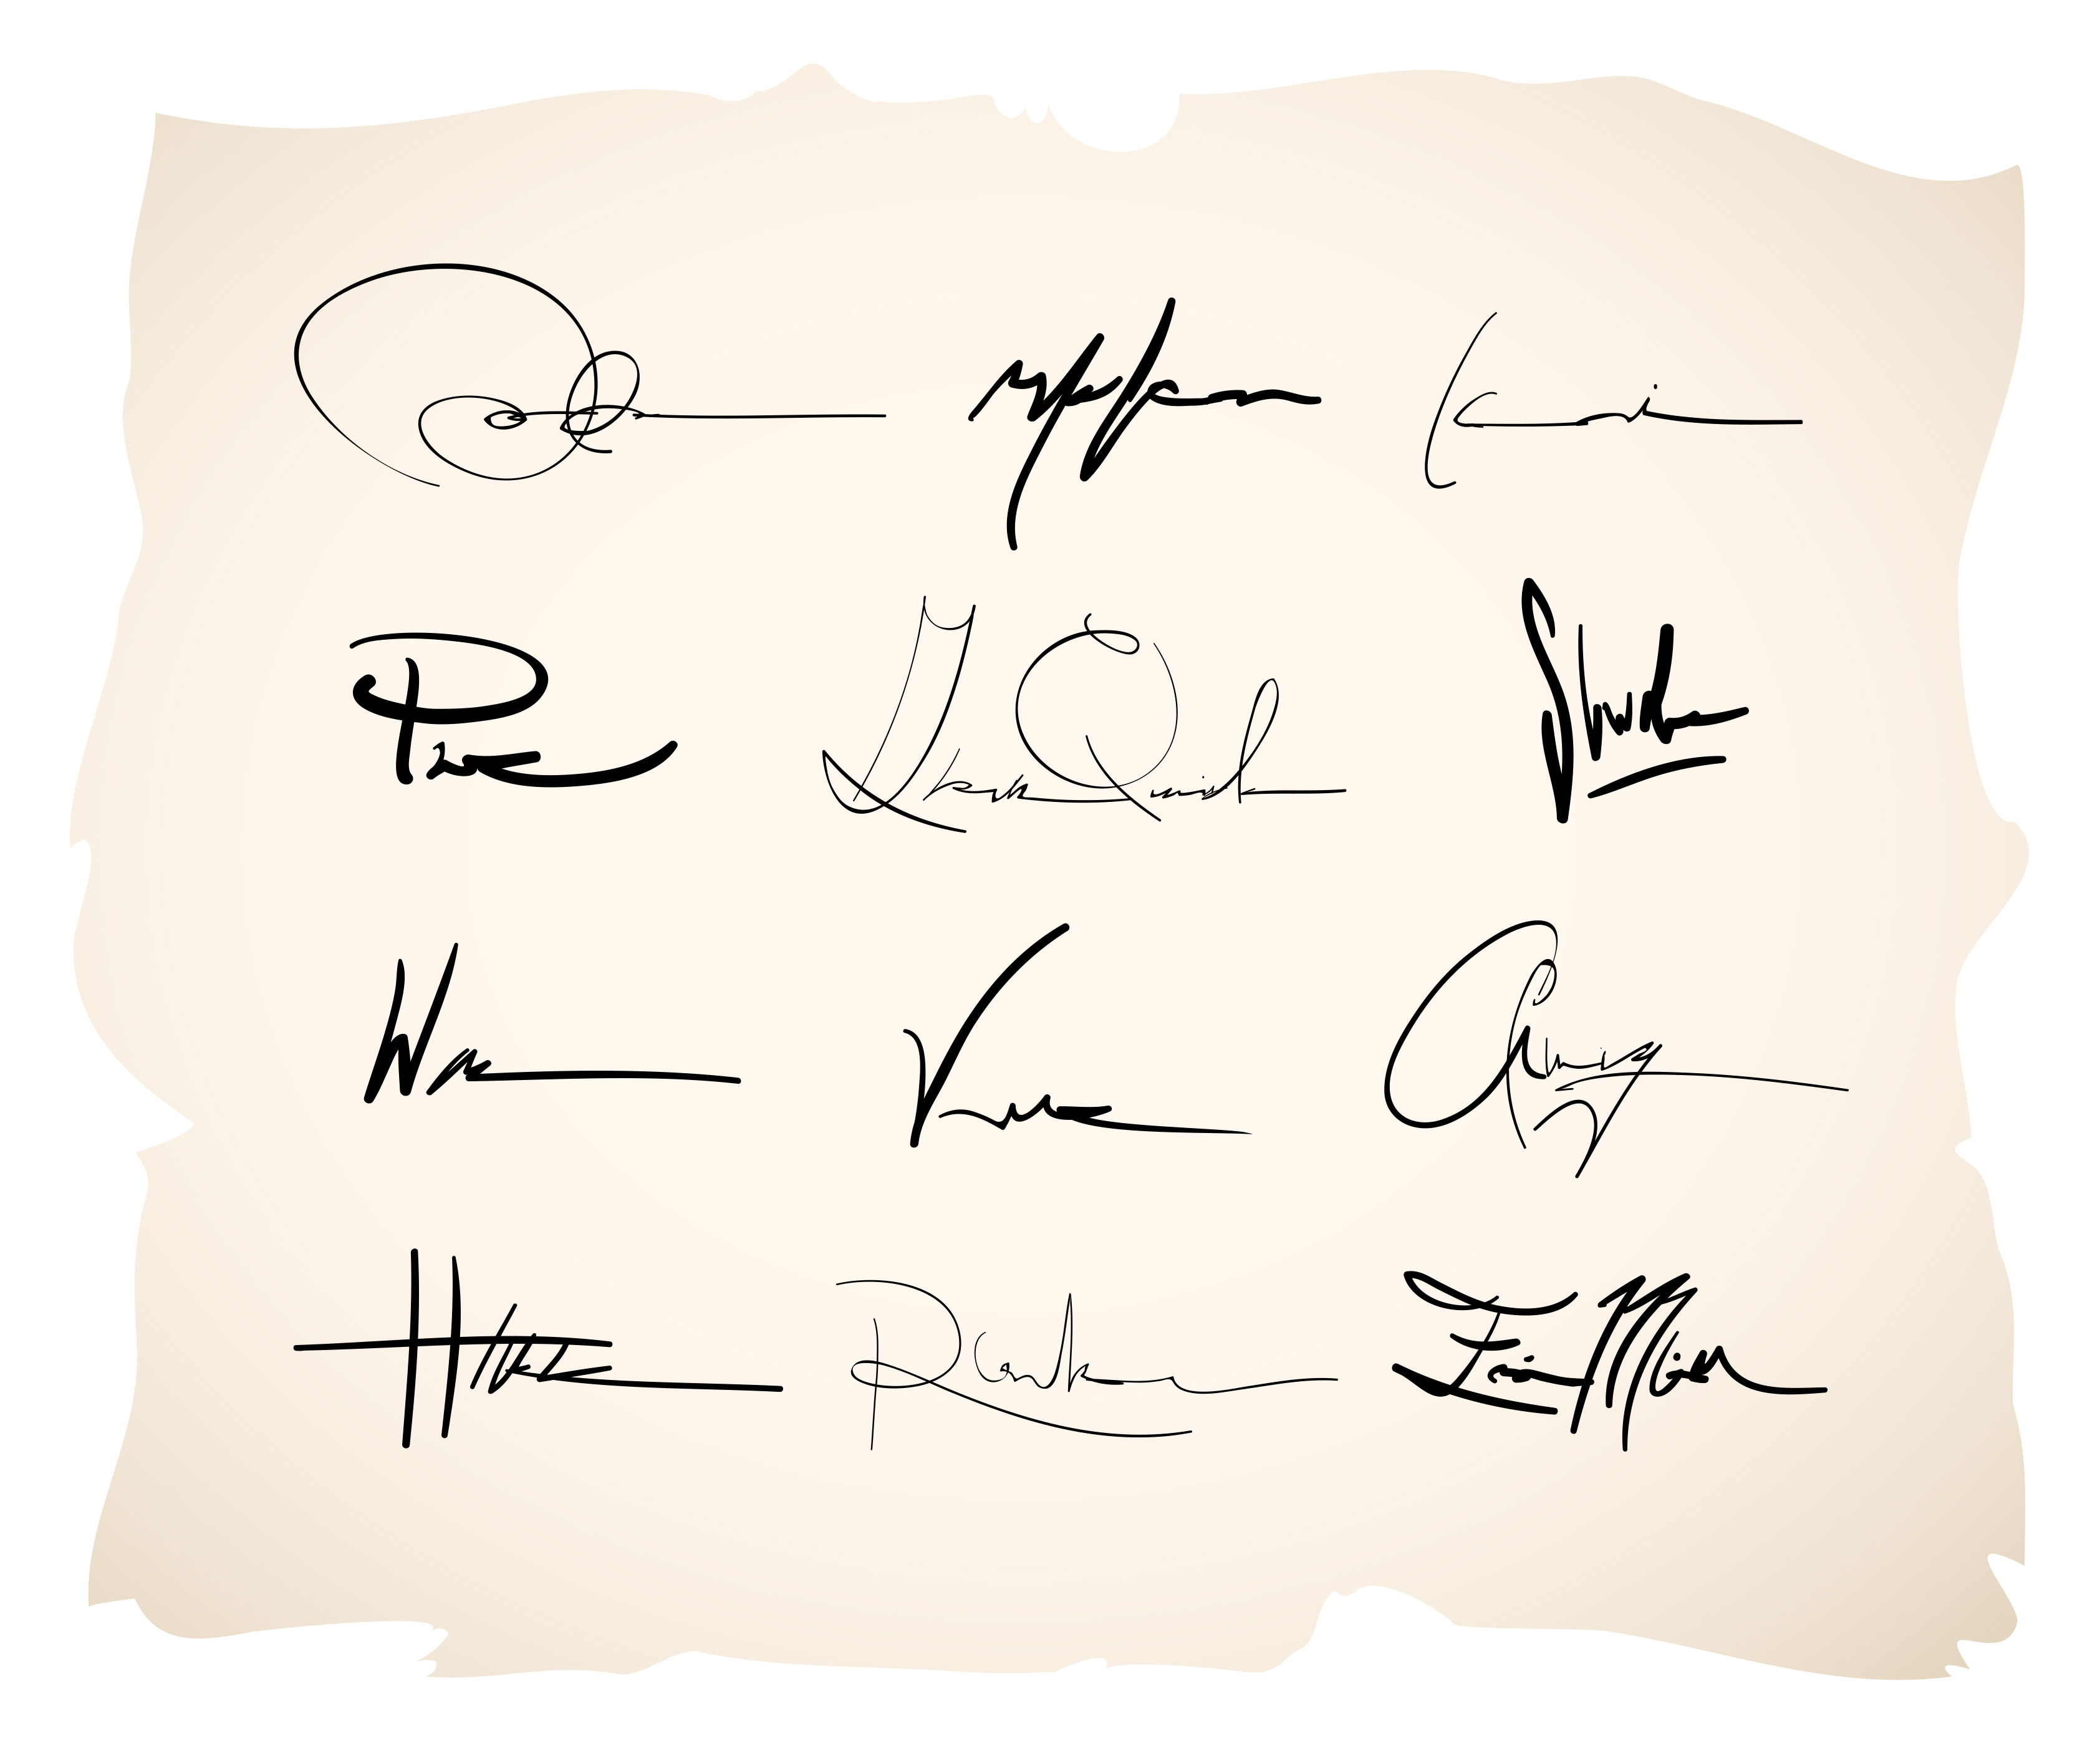 How To Write A Letter With Electronic Signature